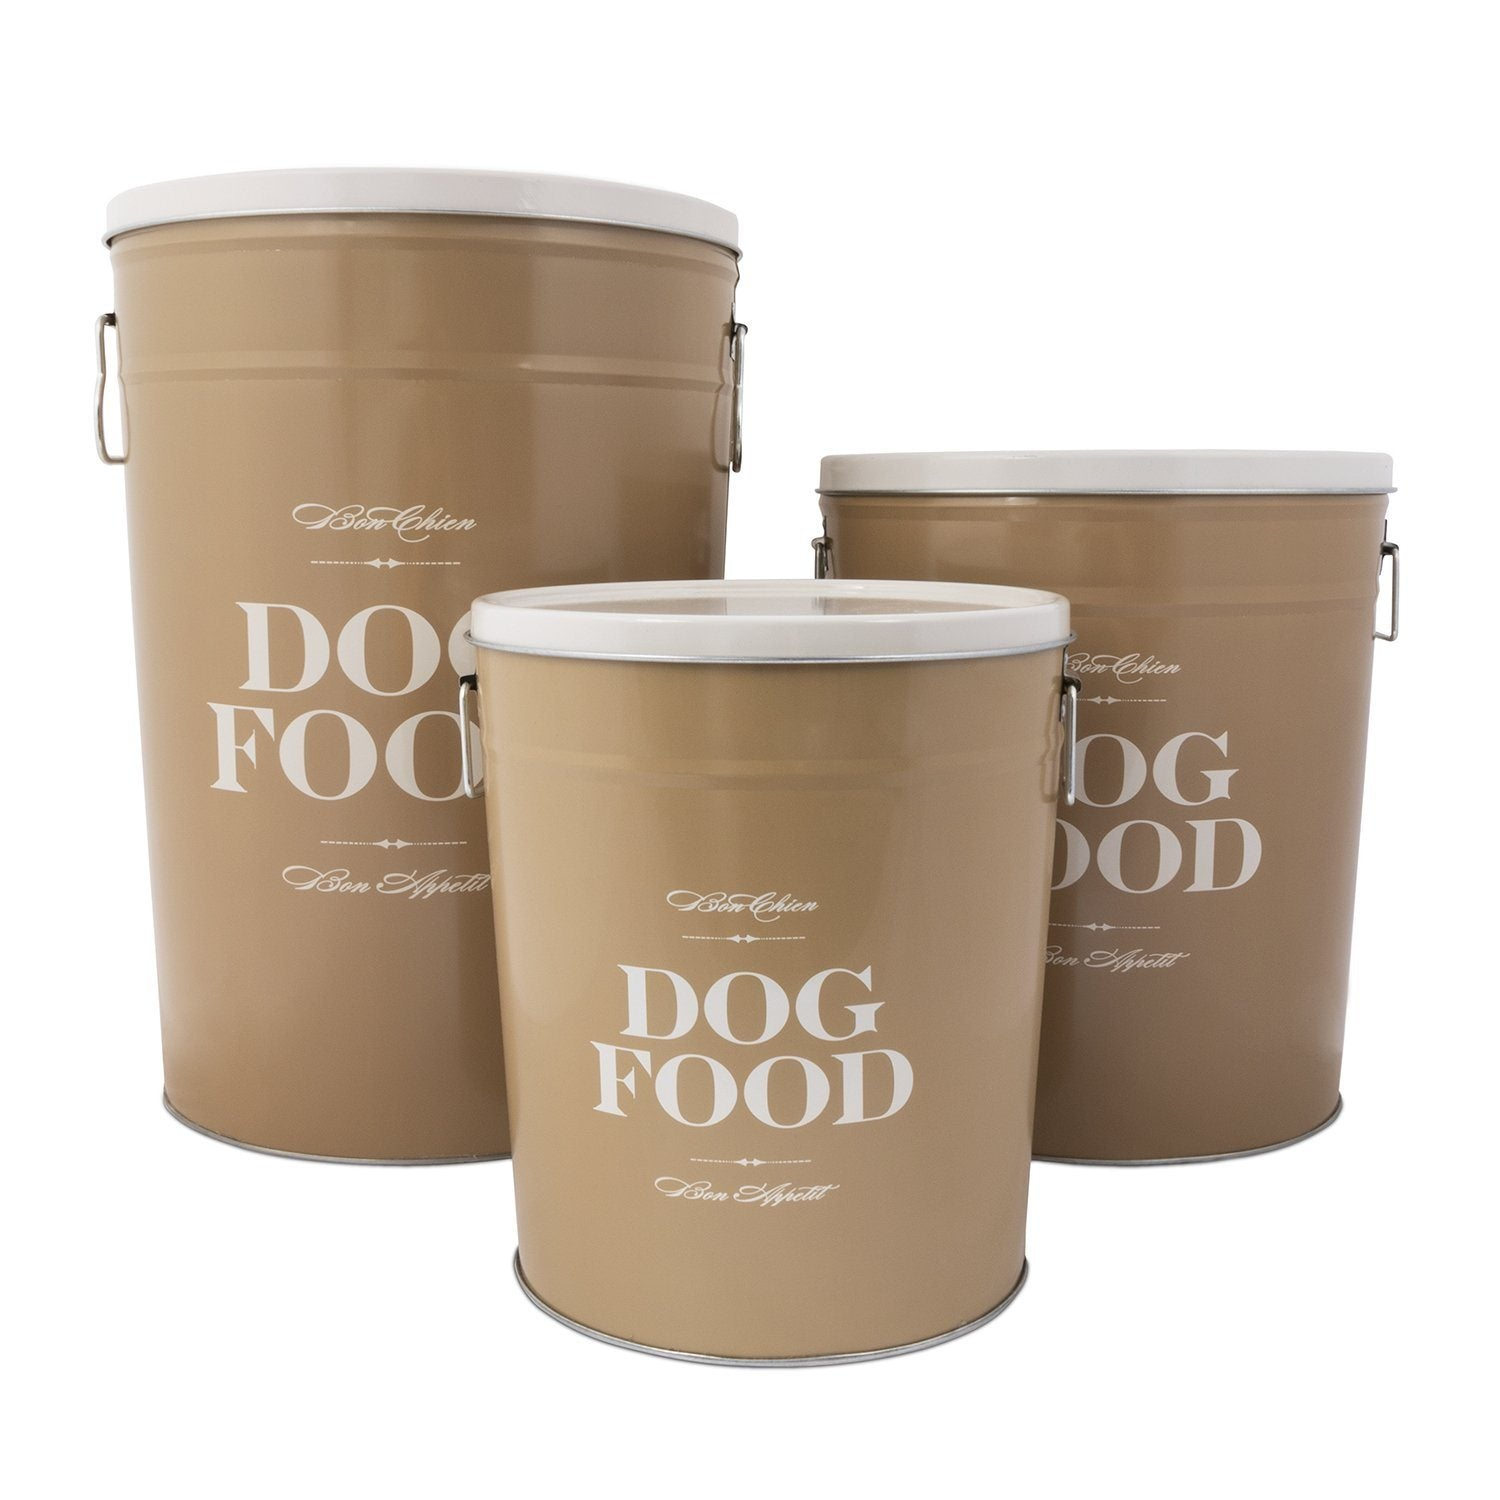 Food Storage - Bon Chien Dog Food Storage